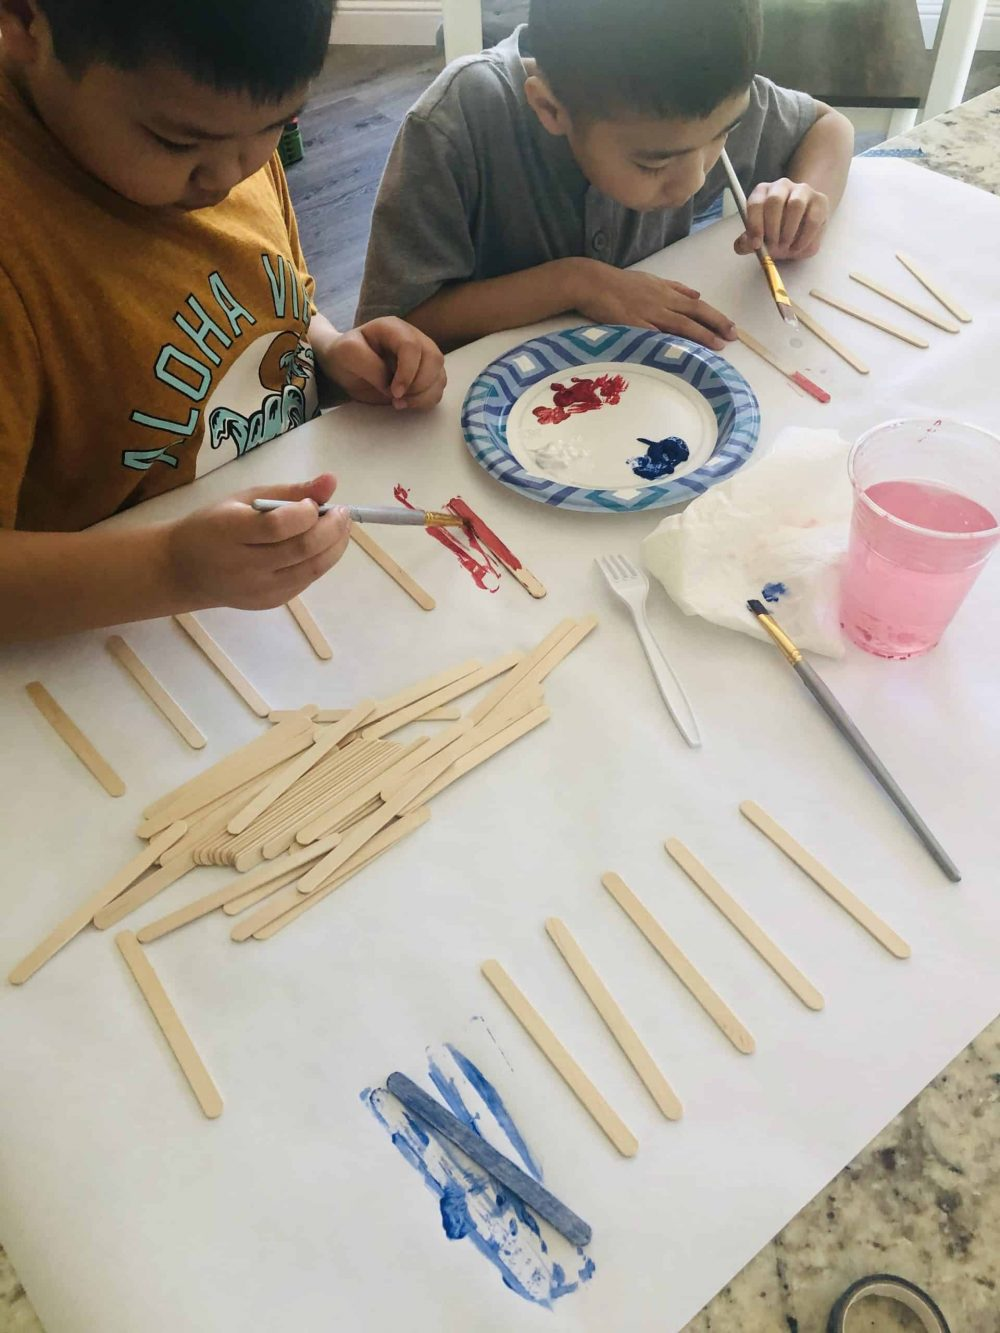 4th of july craft making